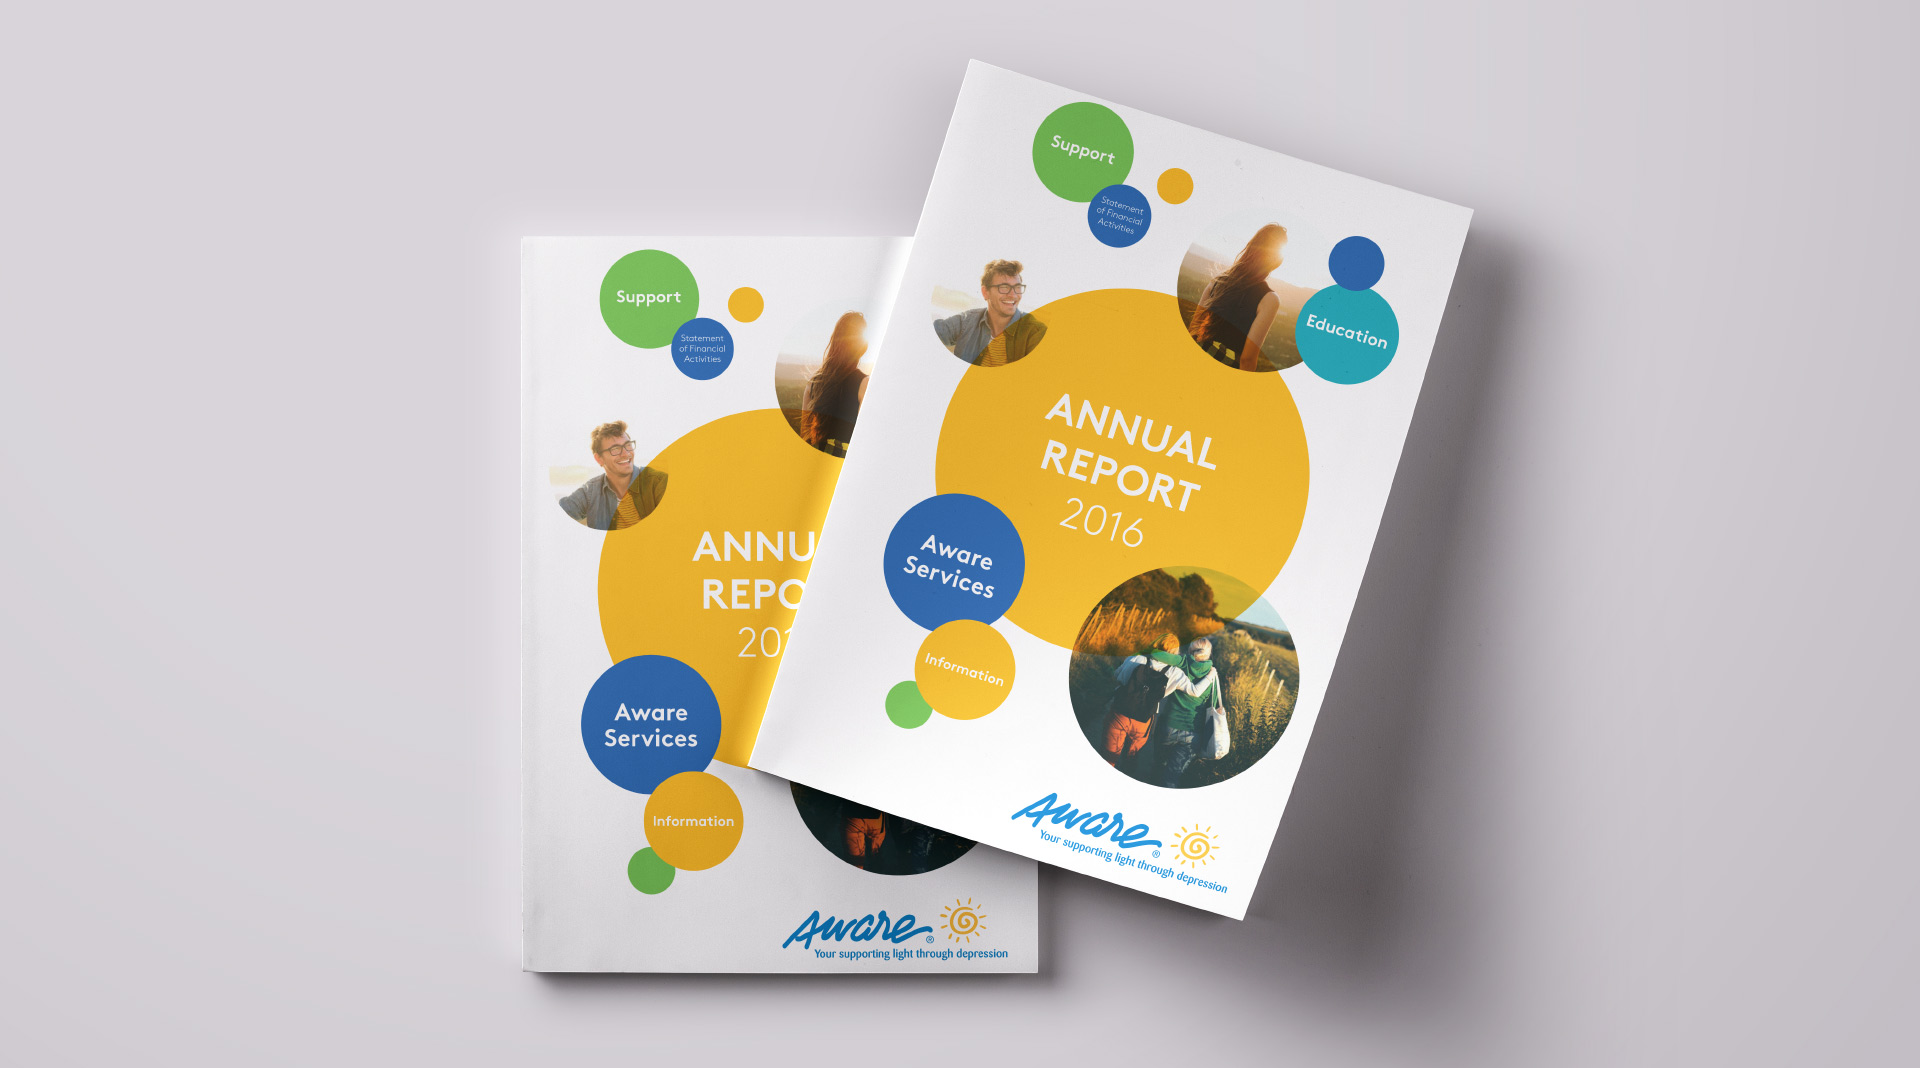 Design of Aware annual report 2017